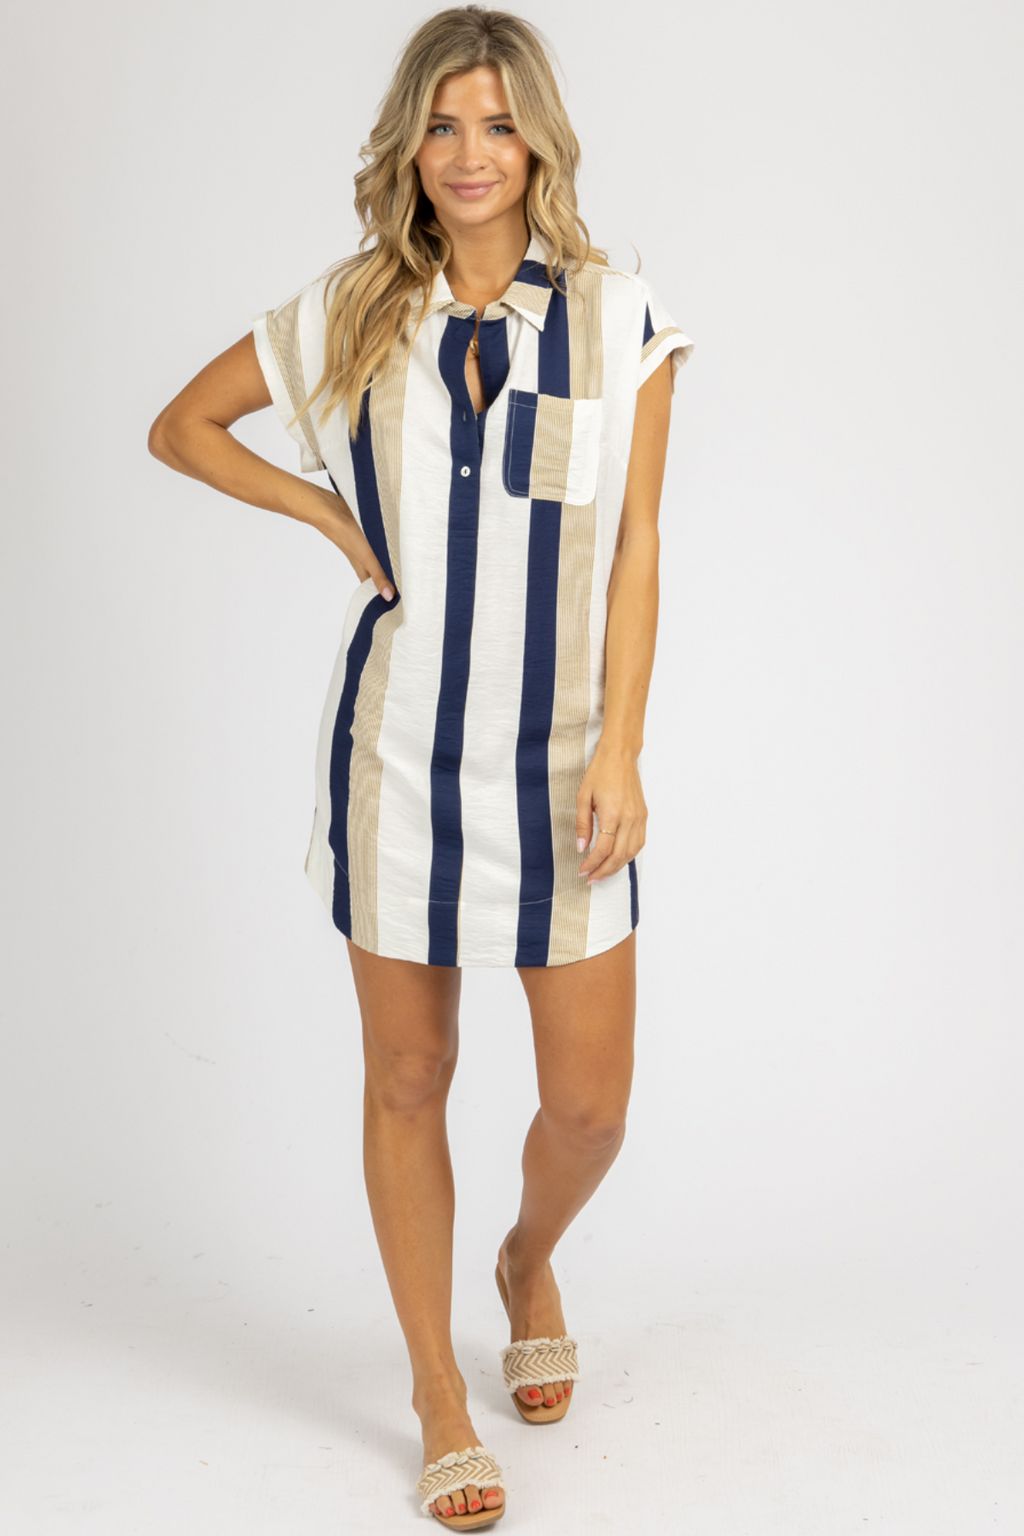 INDIGO + IVORY STRIPED MINI DRESS